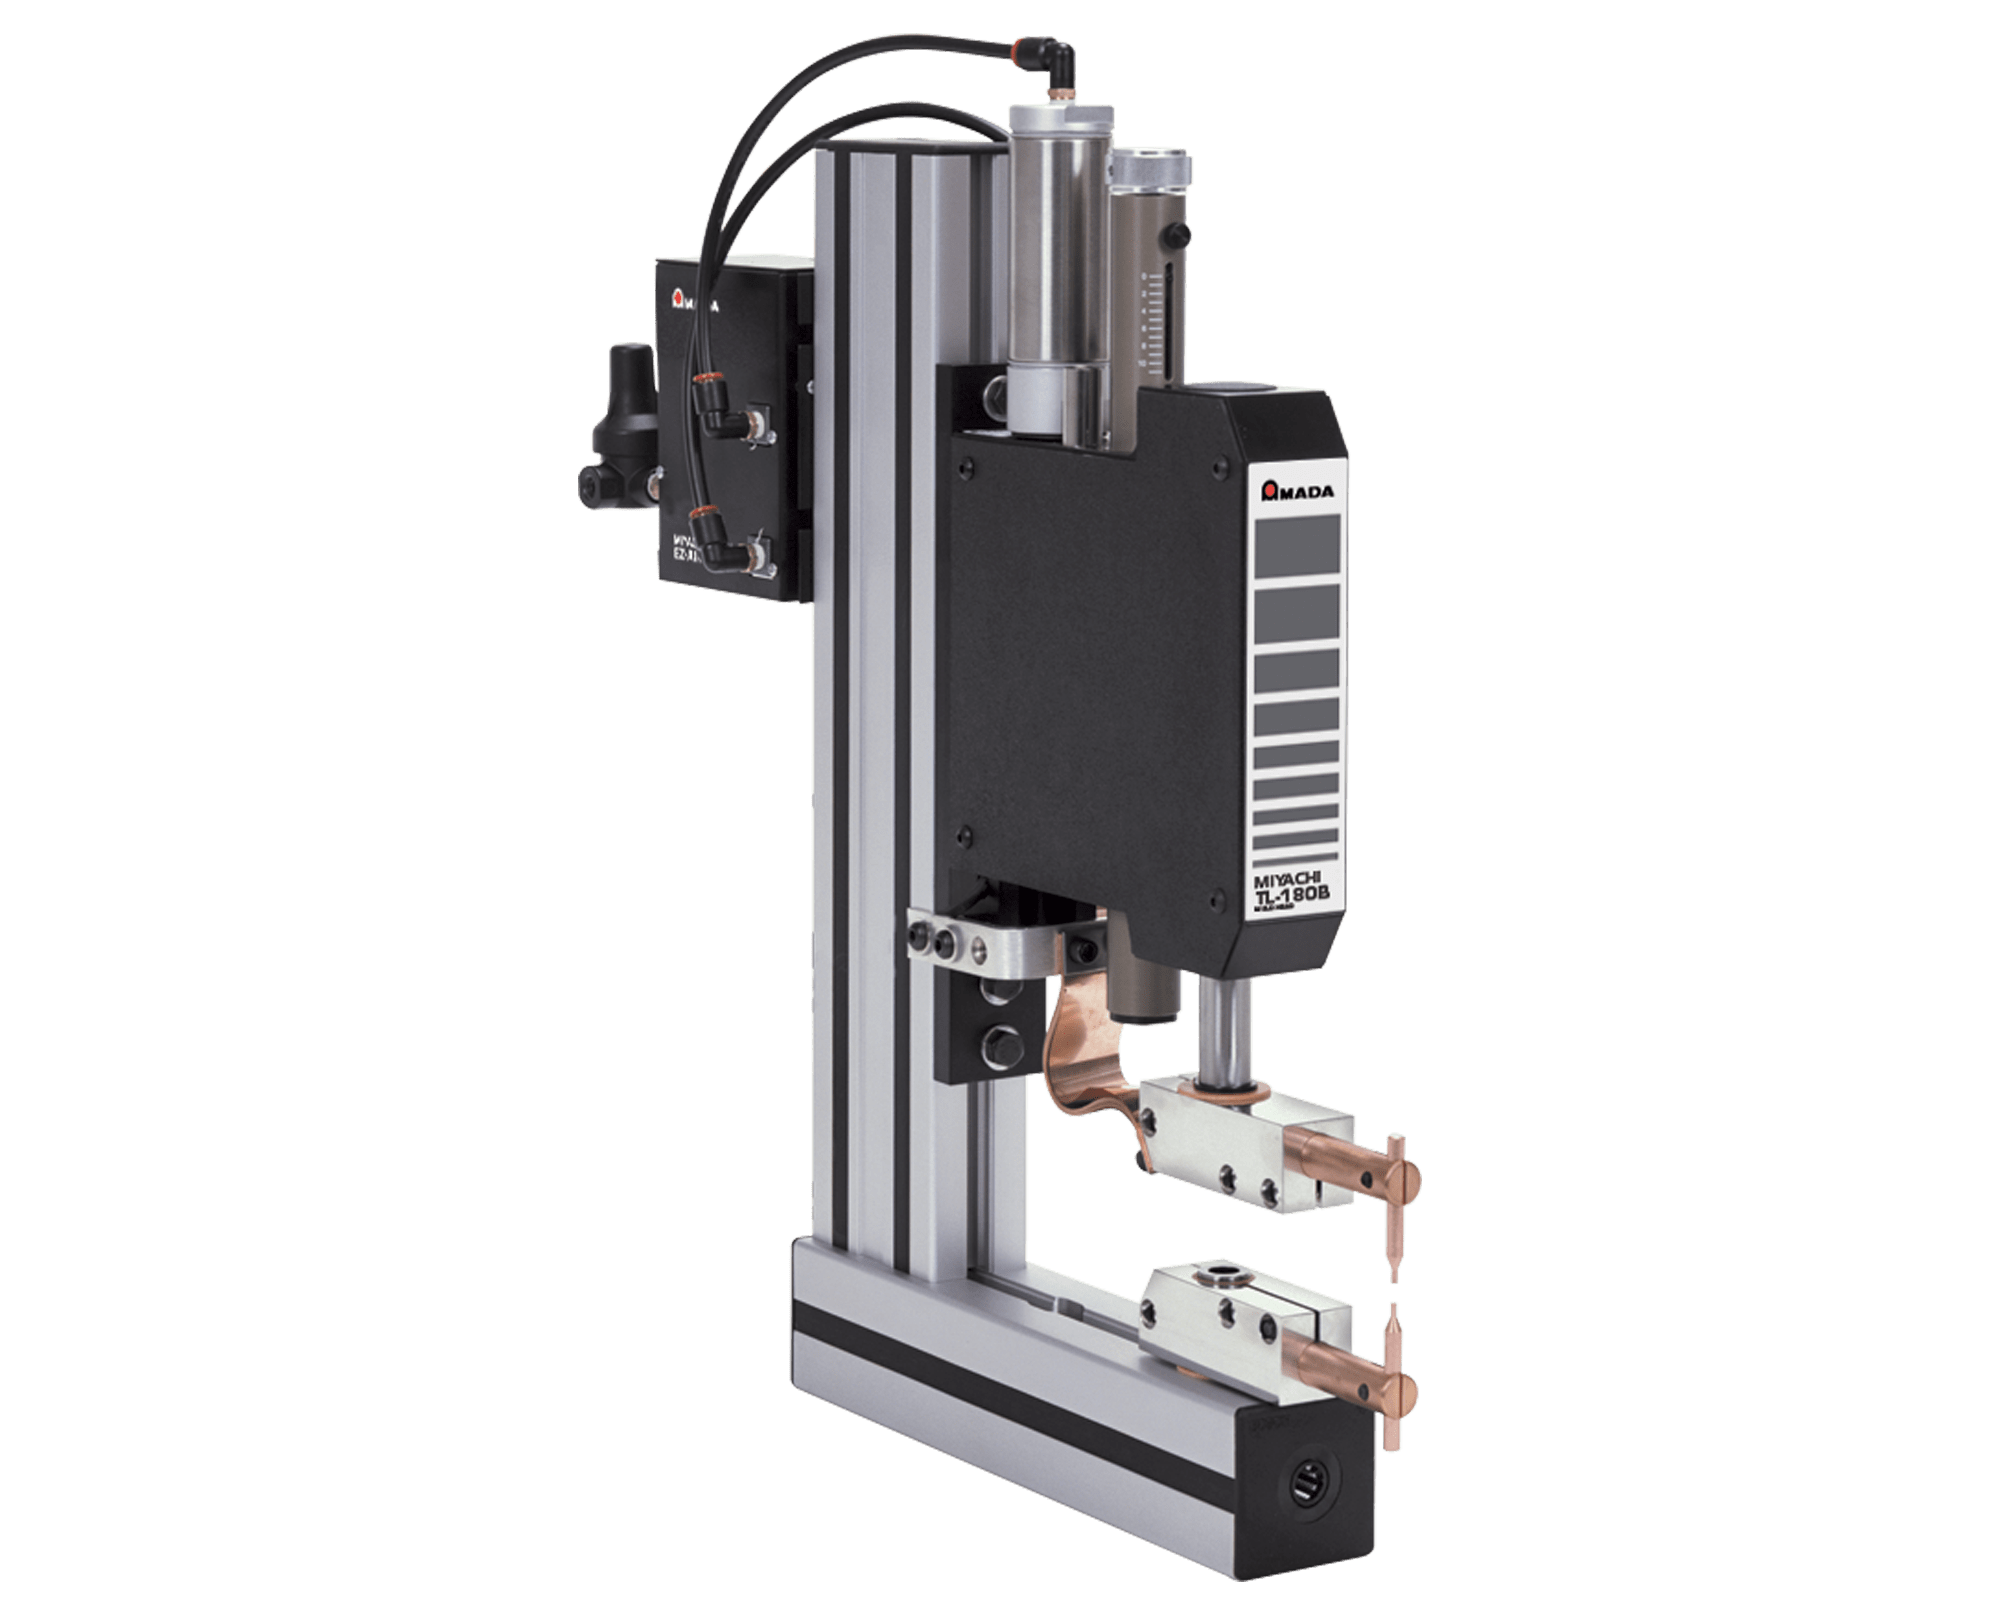 KN-200A Single Force Pneumatic Weld Head - Opposed Electrodes